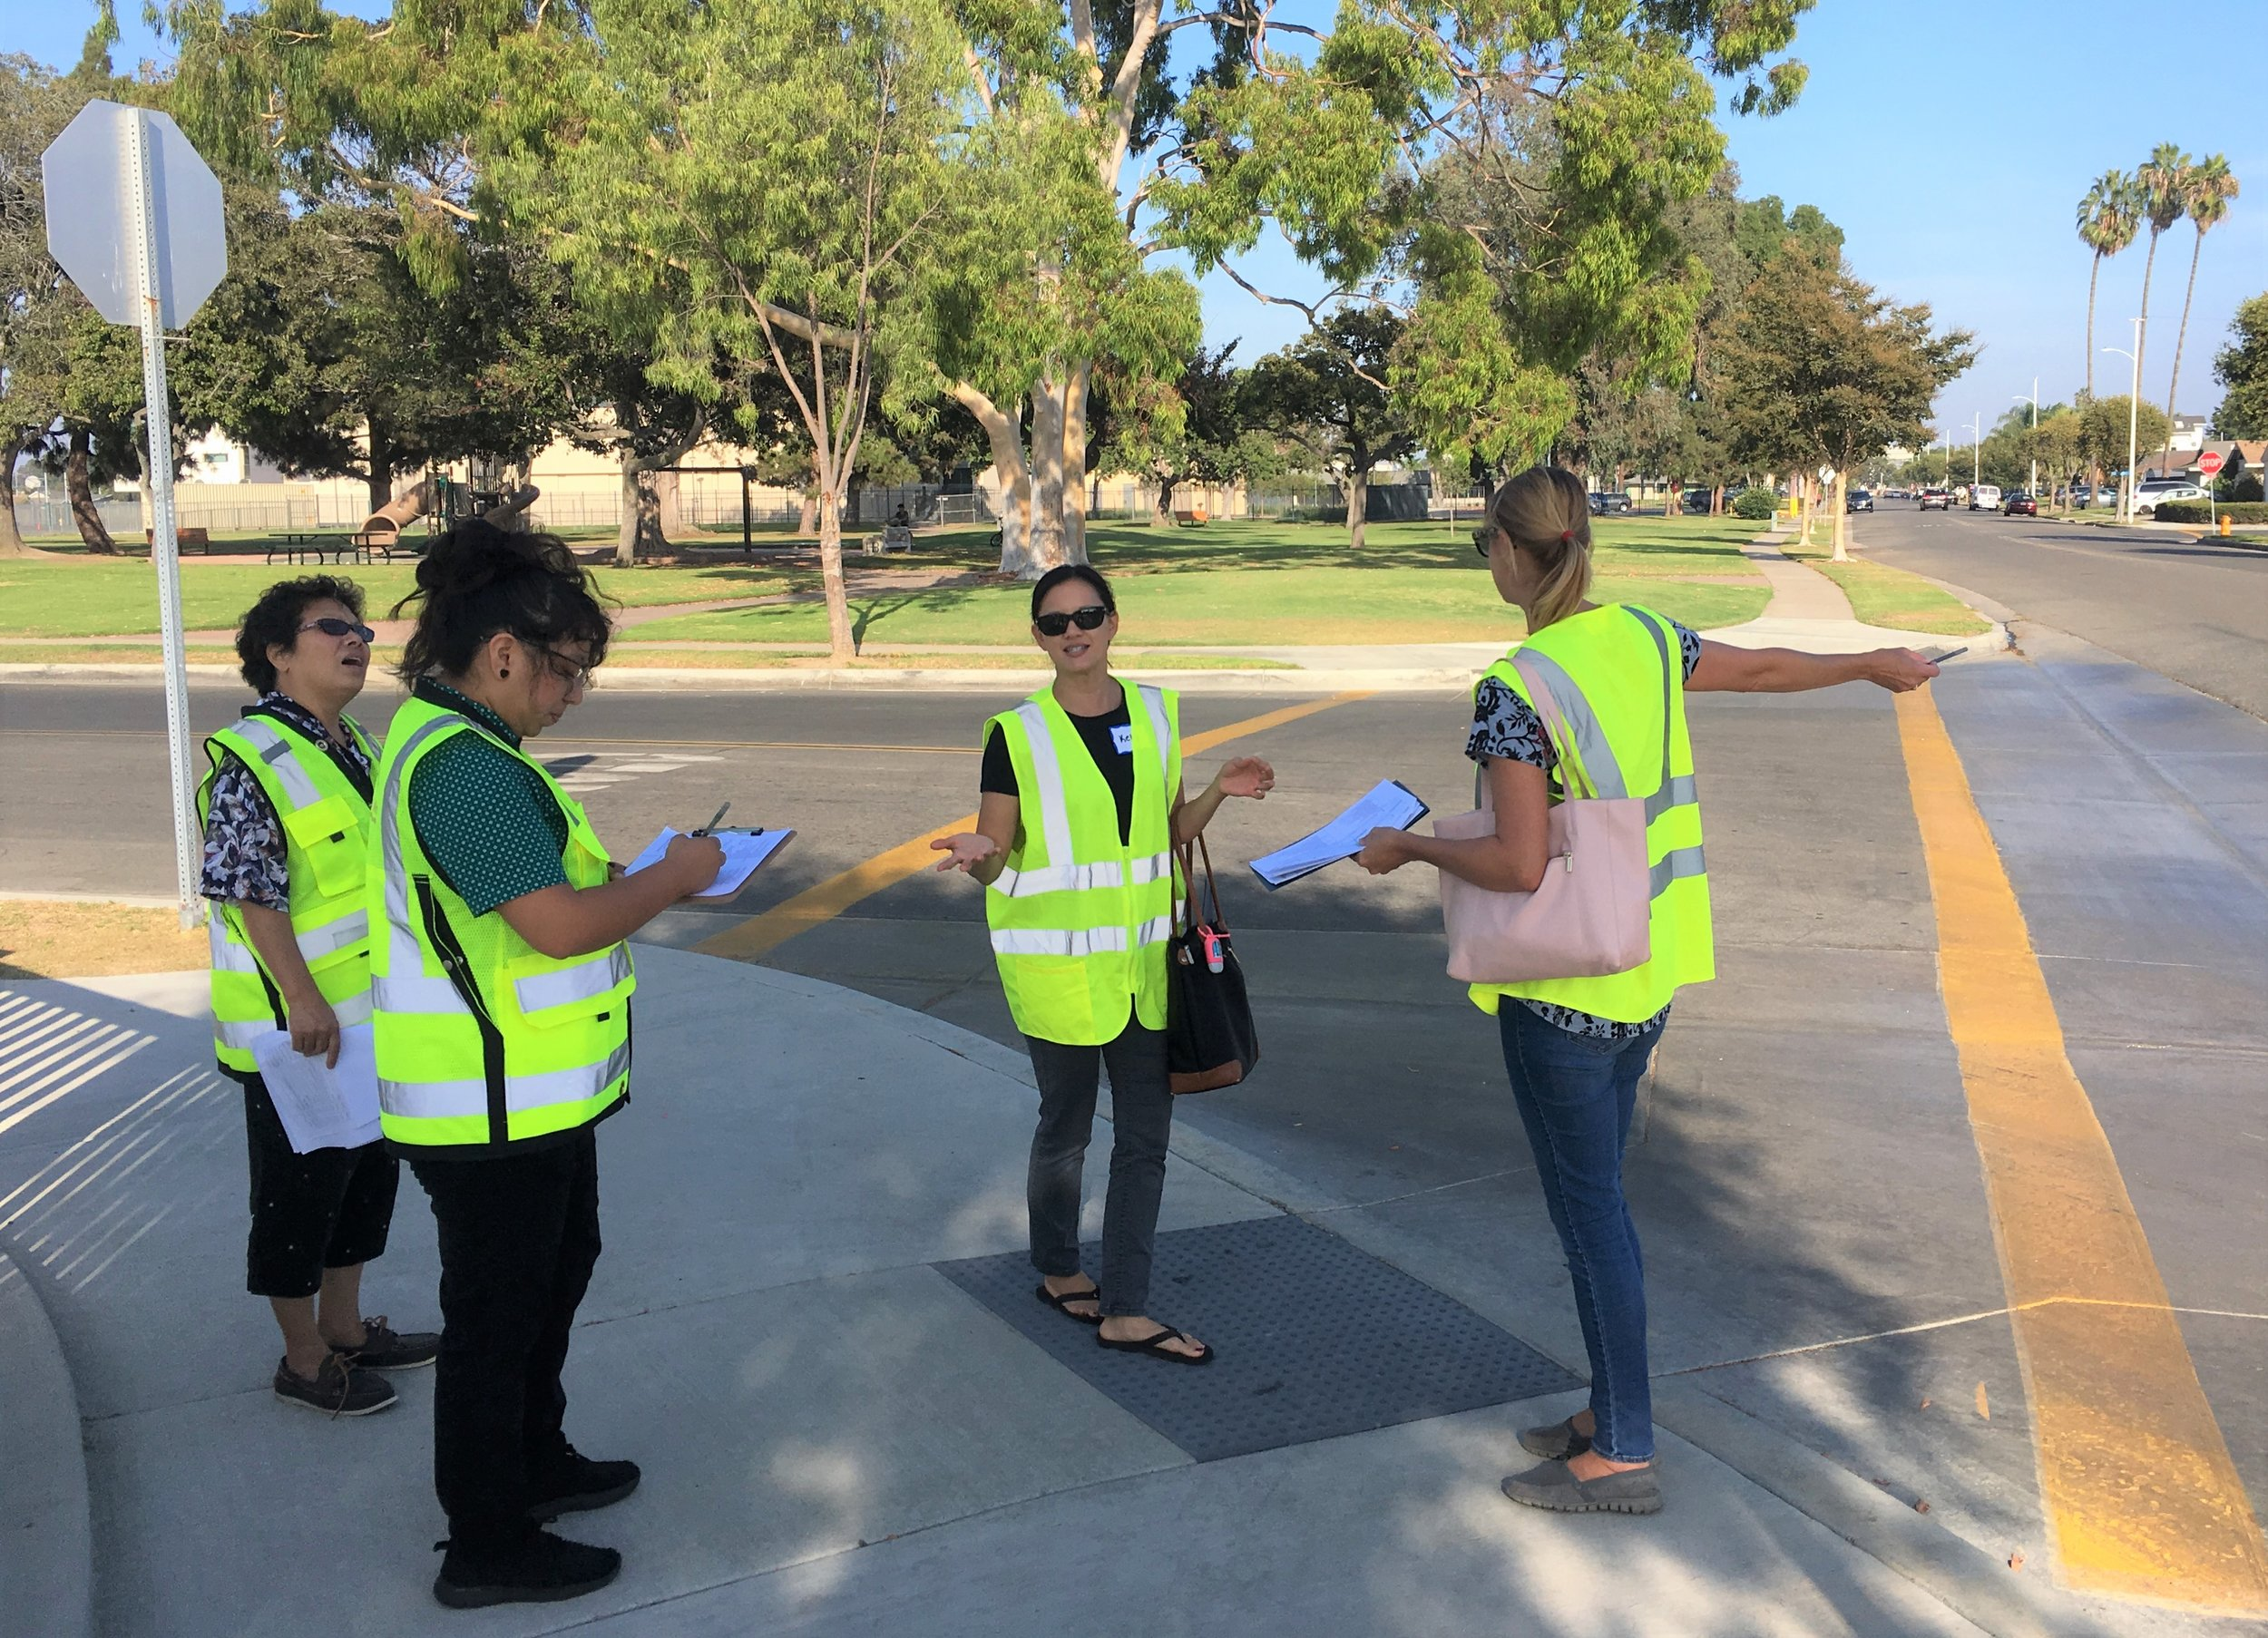 Cal Walks staff lead parents on a walk assessment along routes used by students to get to and from school in Huntington Beach.